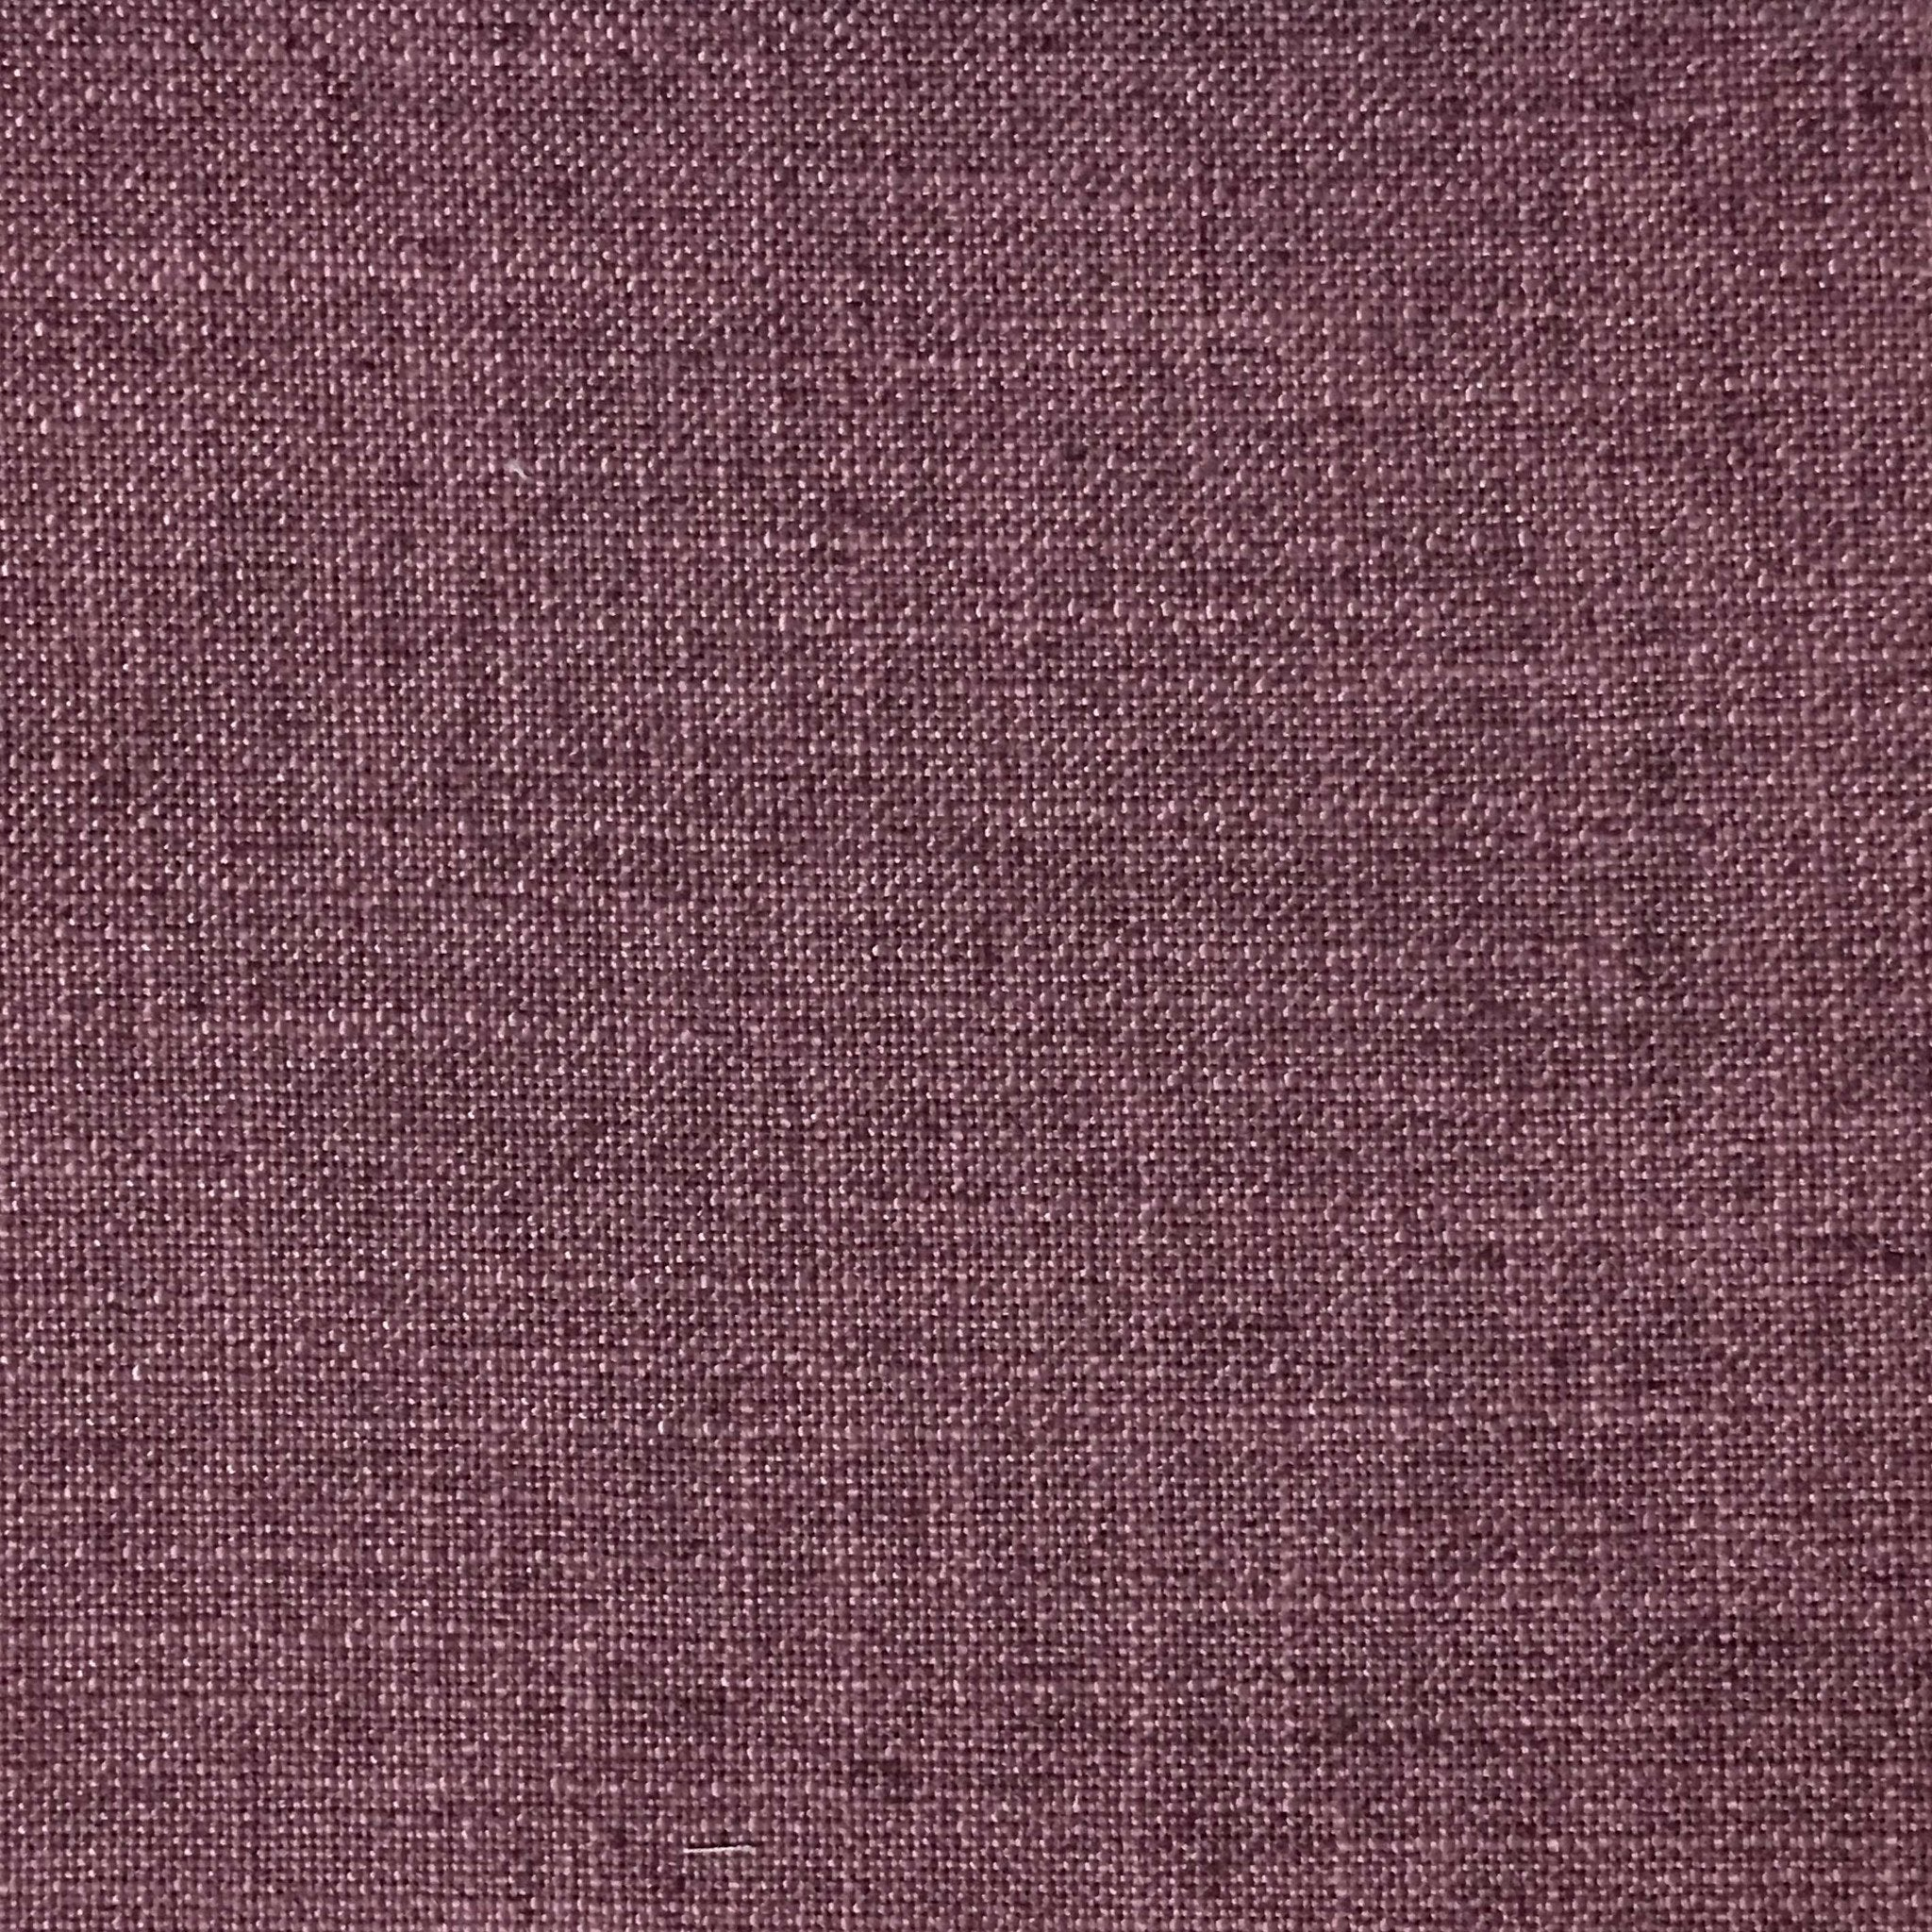 daee8e7fb ... Blake - Linen Polyester Blend Burlap Upholstery Fabric by the Yard -  Available in 30 Colors ...